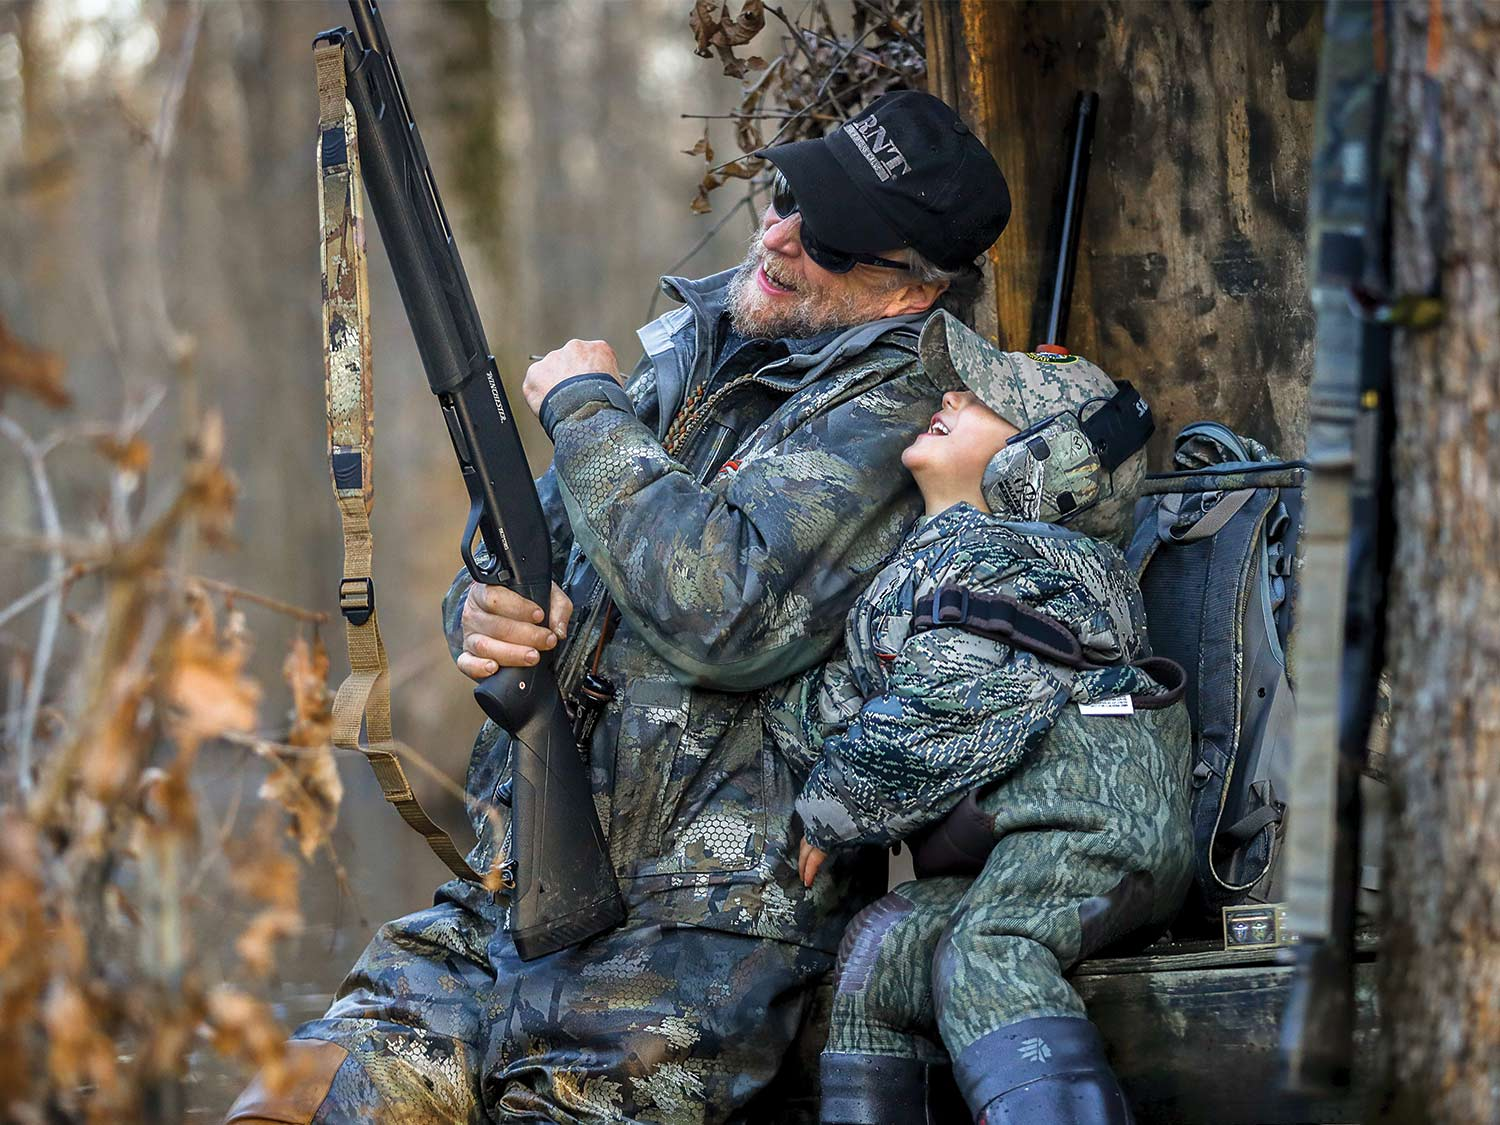 An elderly gentleman holding a rifle laughs and smiles with his grandchild in a tree stand.